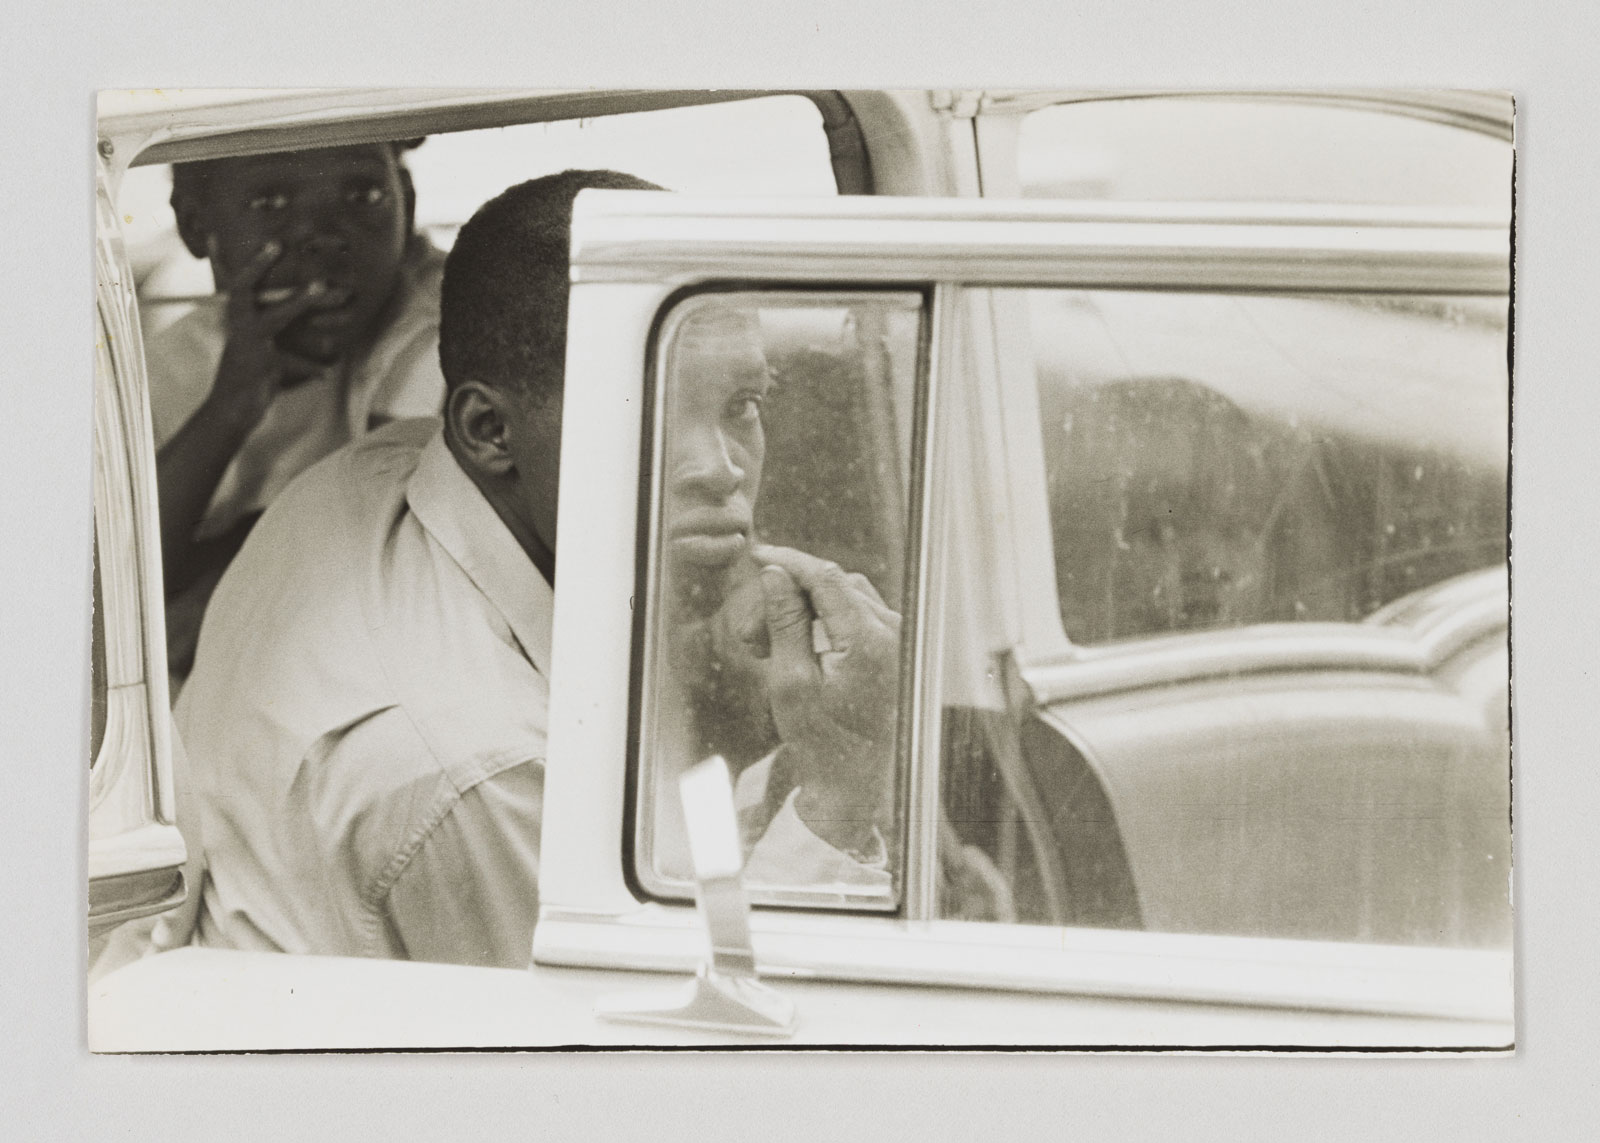 Three boys seen through the window and open door of a parked car